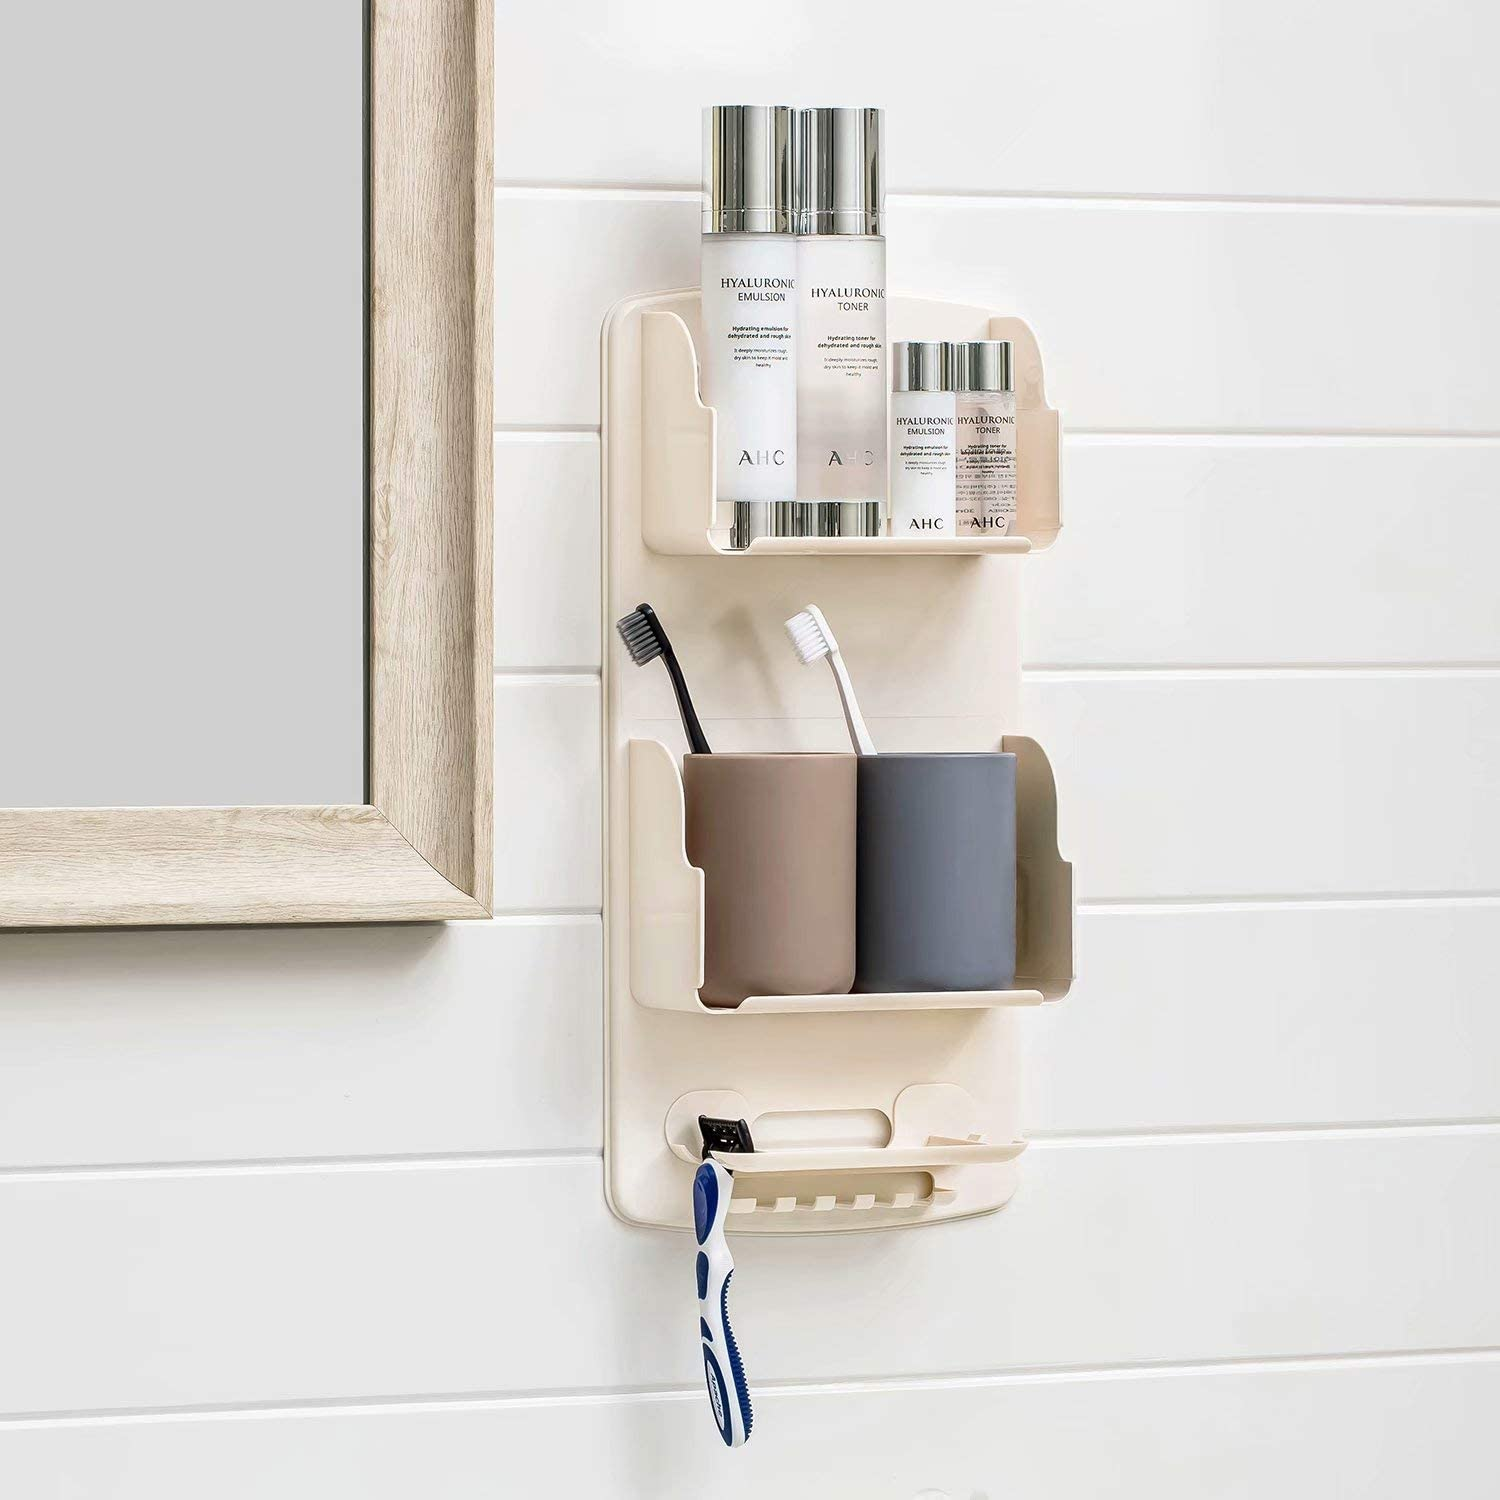 Shower Caddy with Hooks for Hanging